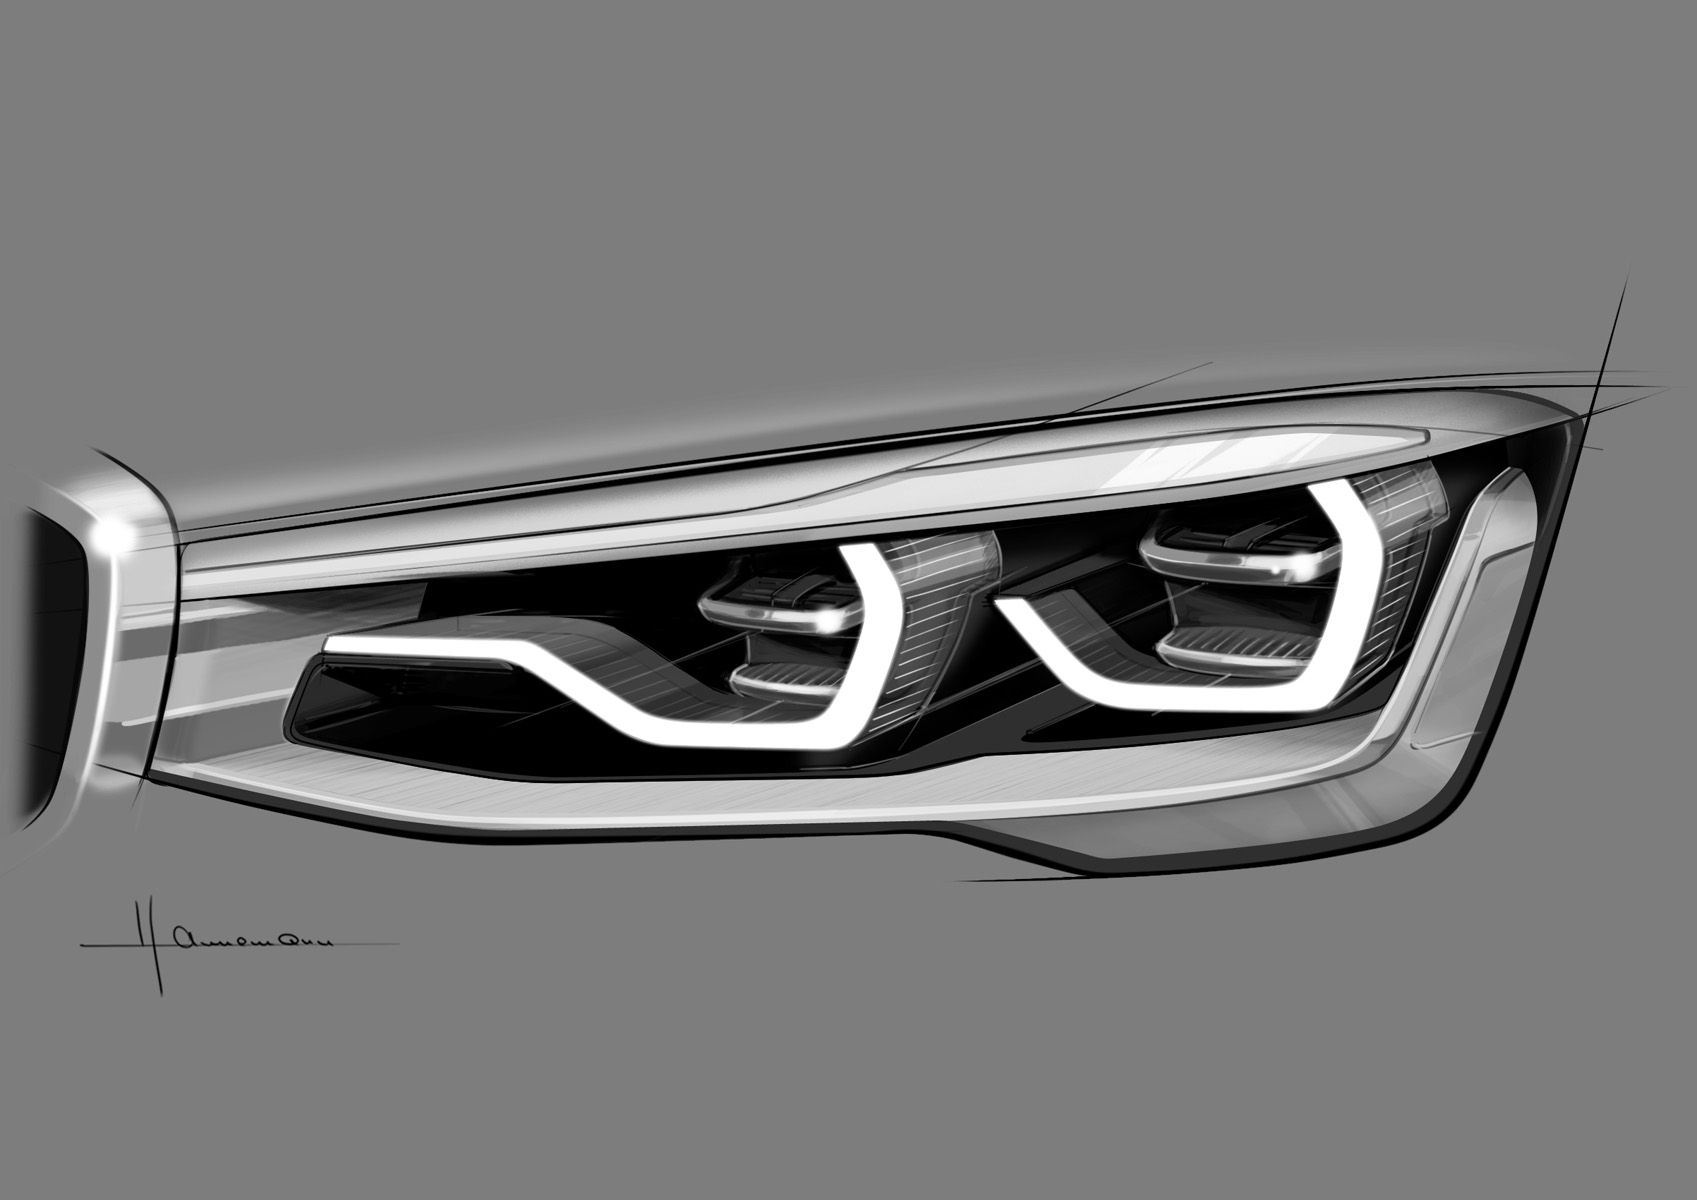 Bmw Headlights Exploded View Google Search Sketching Bmw